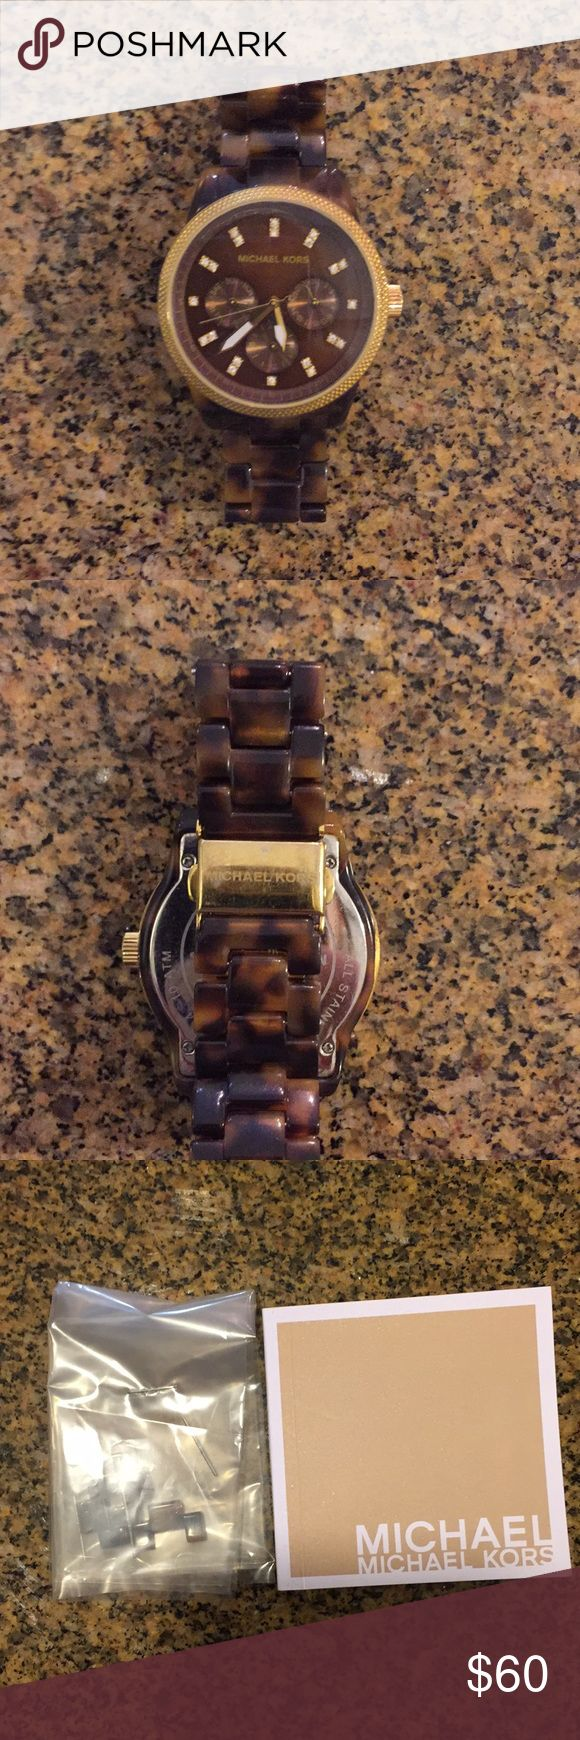 Michael Kors Tortoise Shell Watch Used watch - minor scratches from daily wear, but really not visible unless you look closely. The battery needs to be replaced as it hasn't been used in a year or so. Great accessory with any outfit! Comes with original box, info booklet and extra links! Michael Kors Accessories Watches